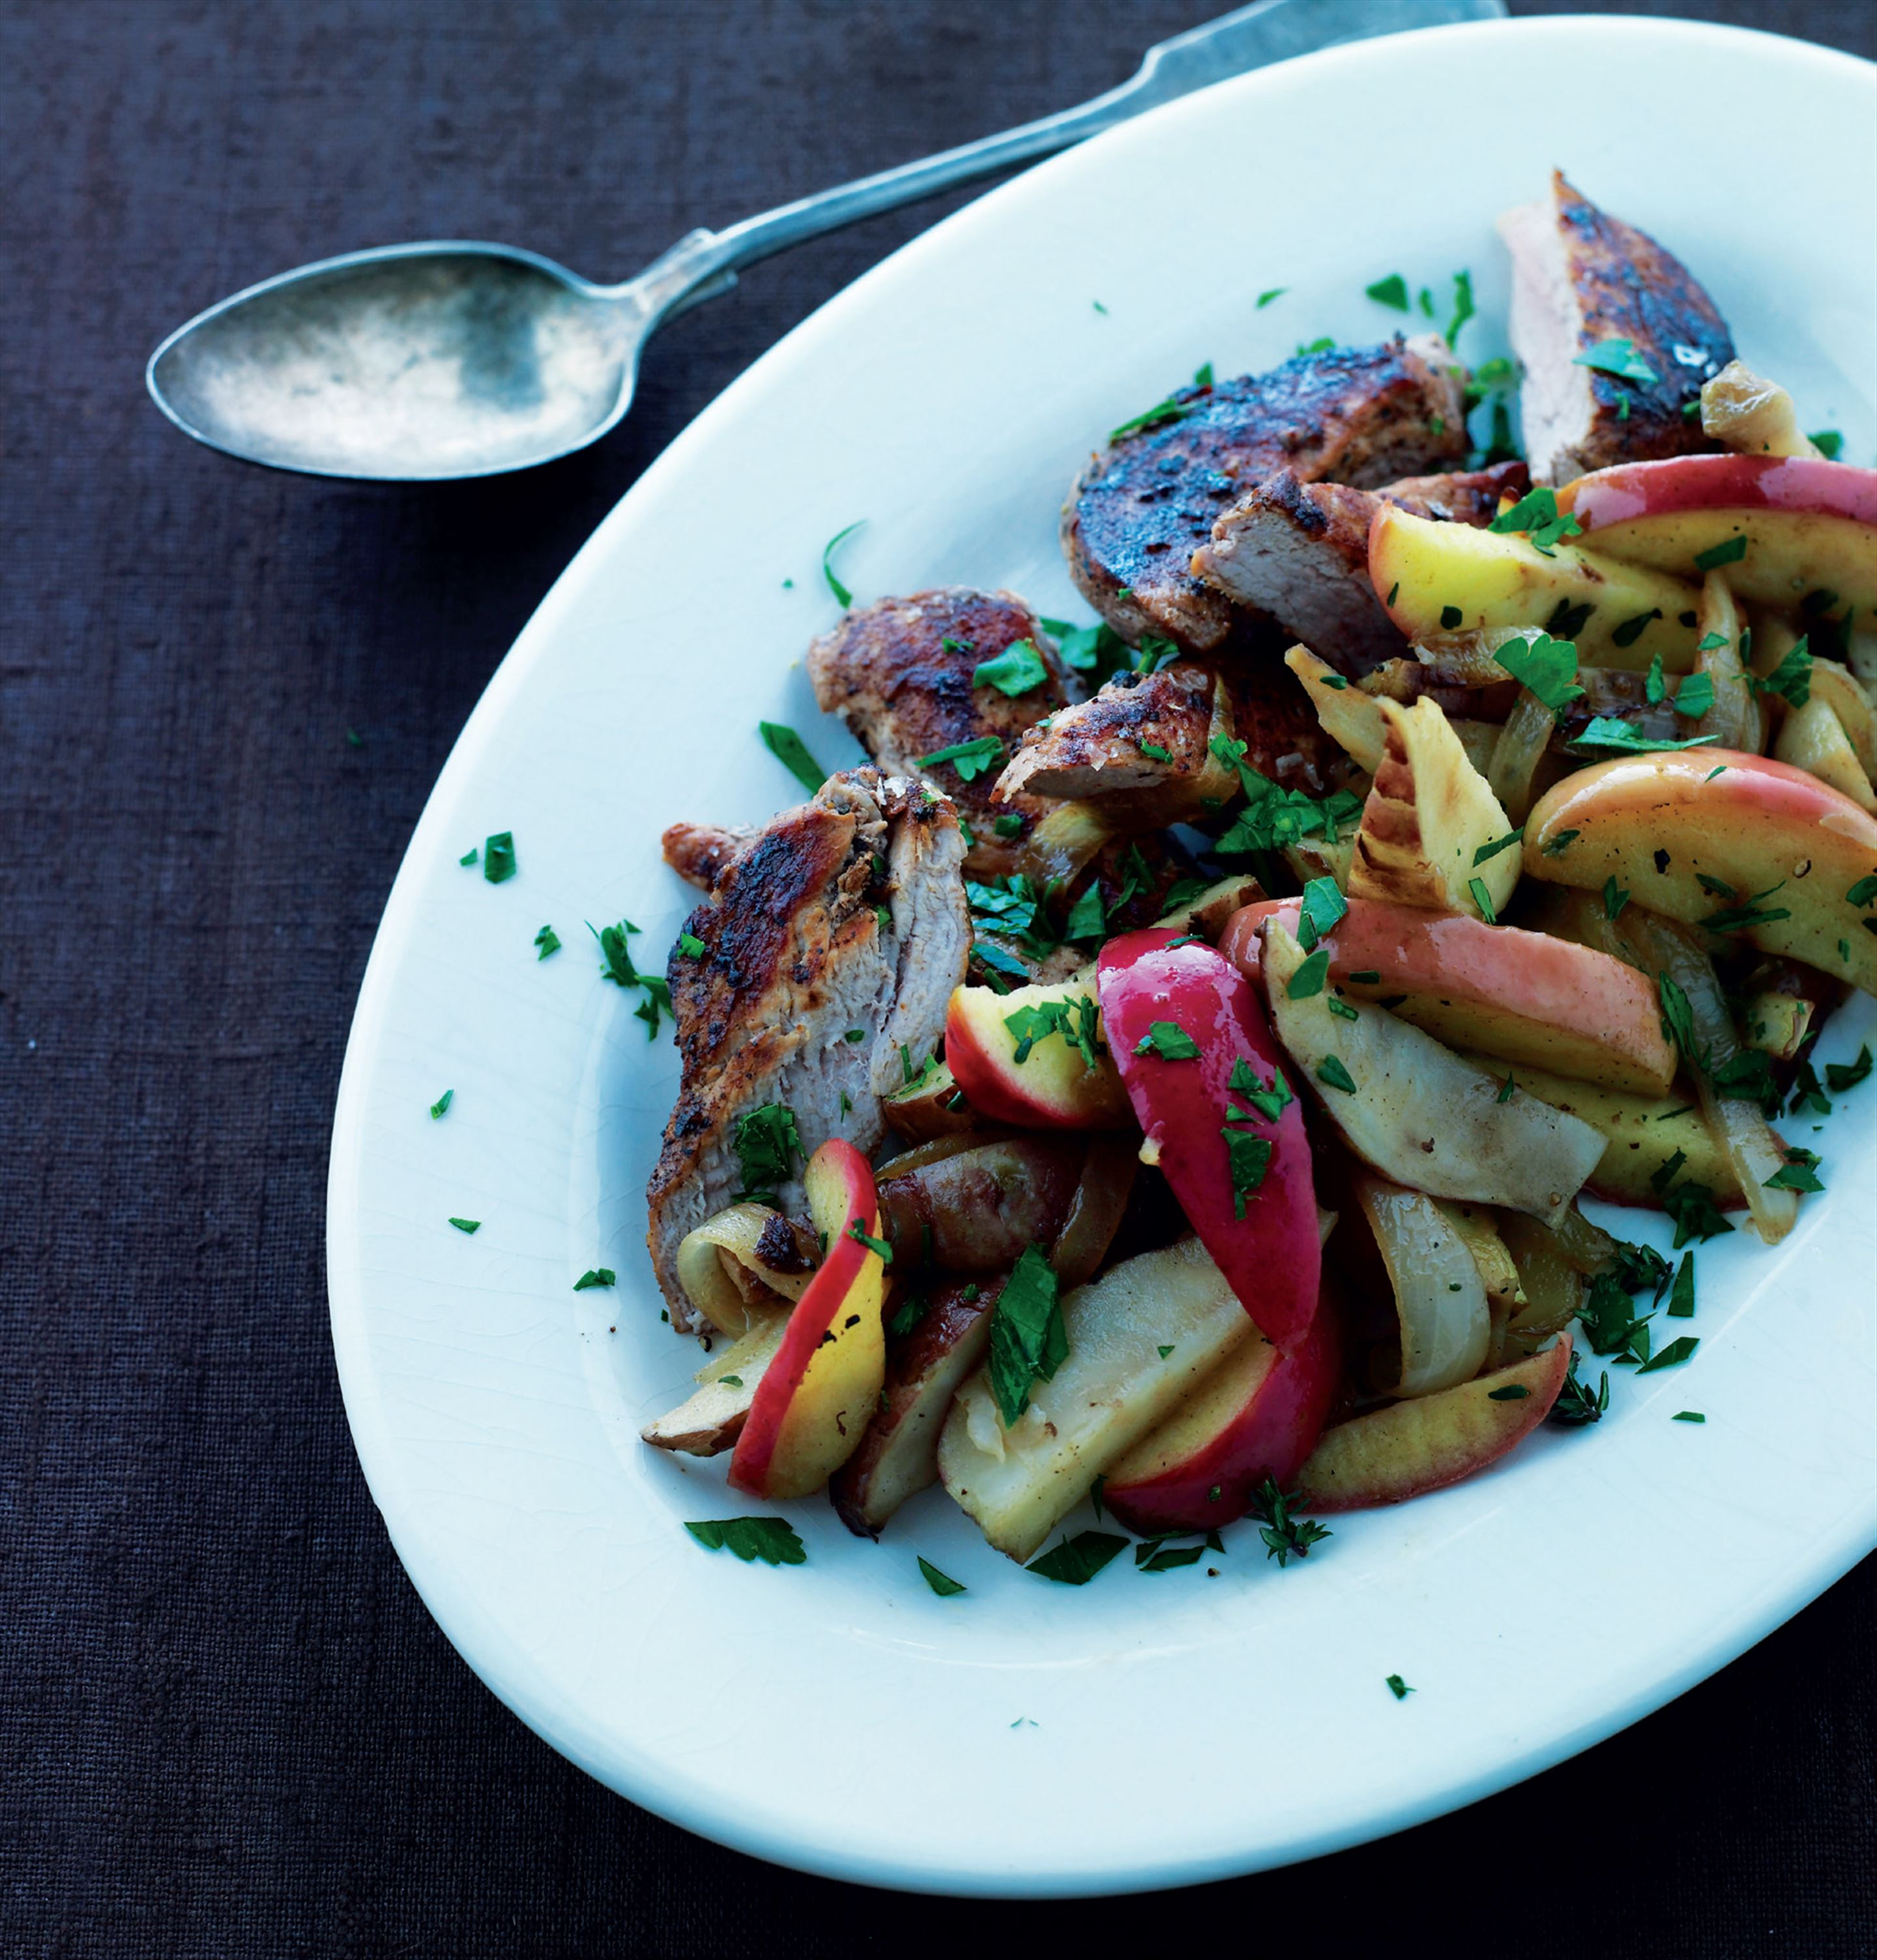 Pork with apples and Jerusalem artichokes